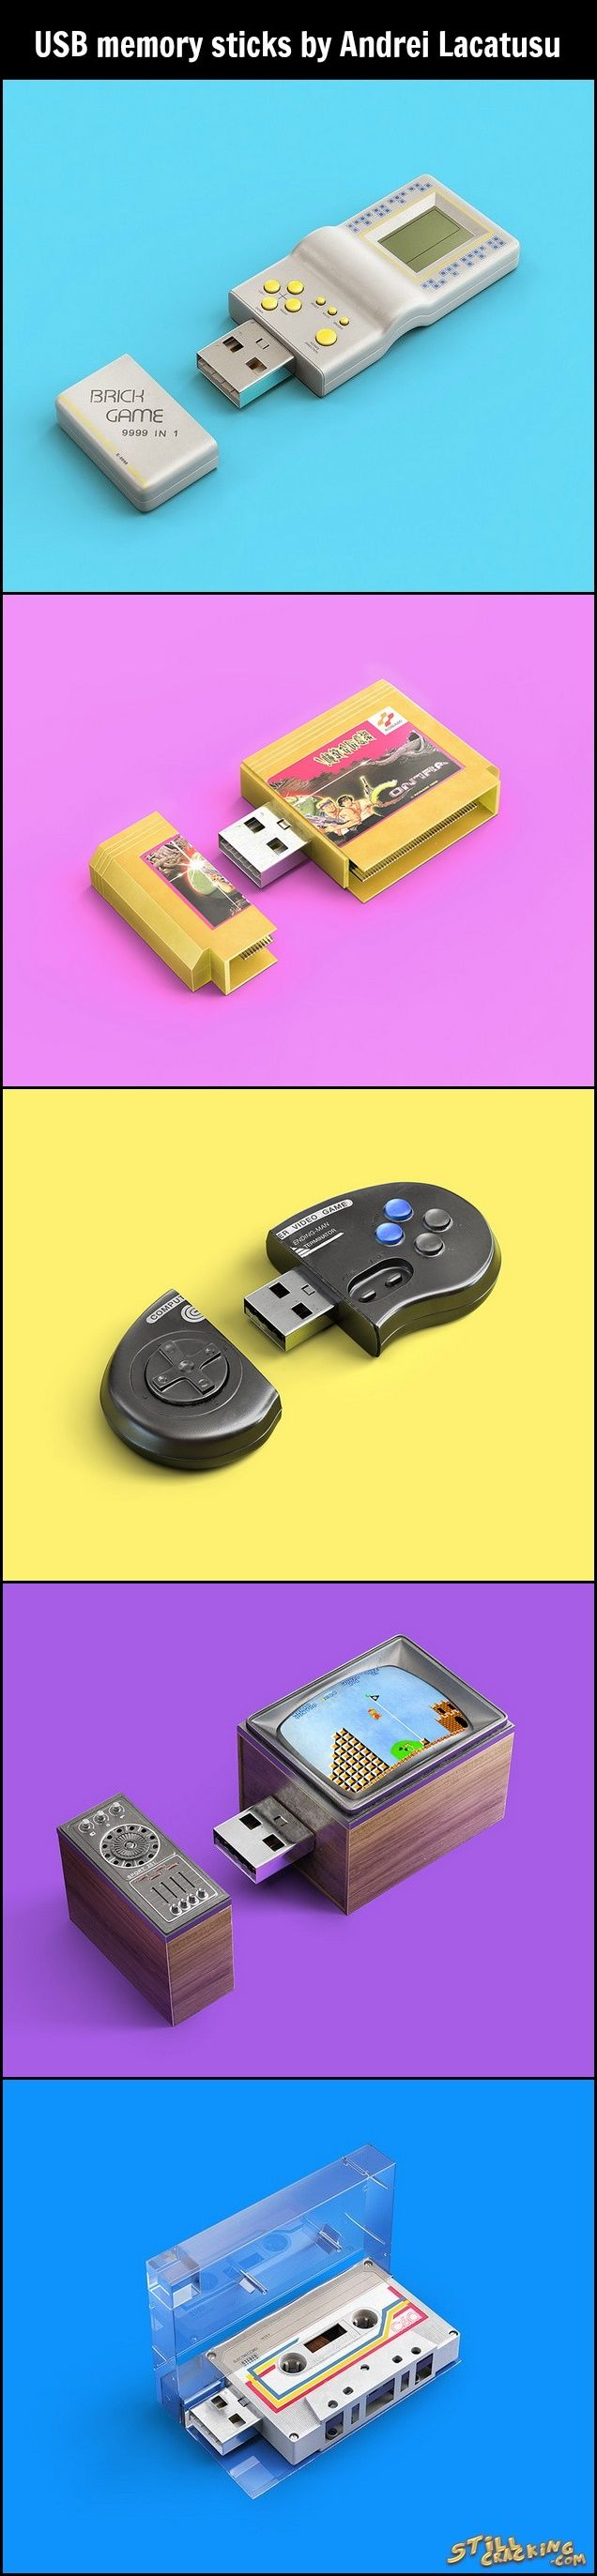 USB Memory Sticks By Andrei Lacatusu                                                                                                                                                     More